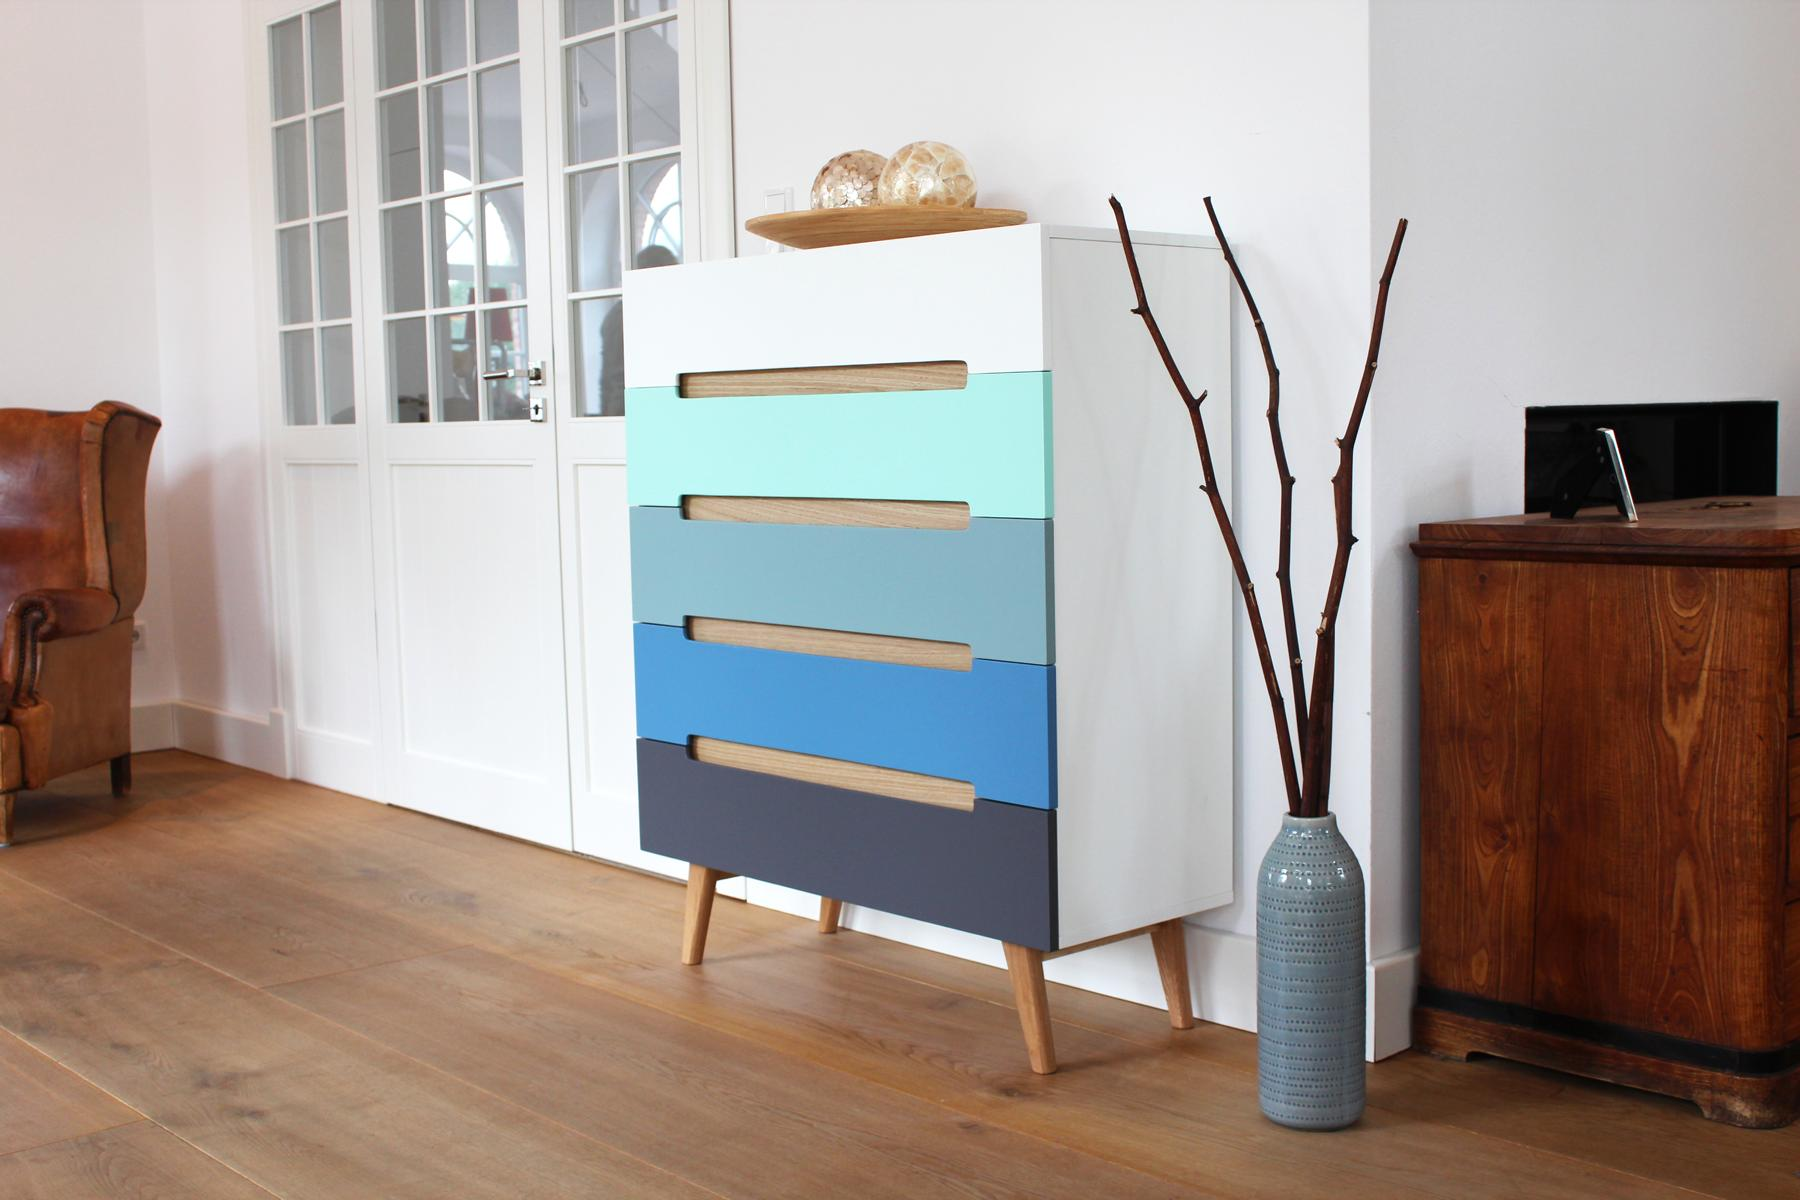 Cagusto Kommode Bunt Moderne Kommoden Highboards Sideboards Und Lowboards Cagusto My Home My Style